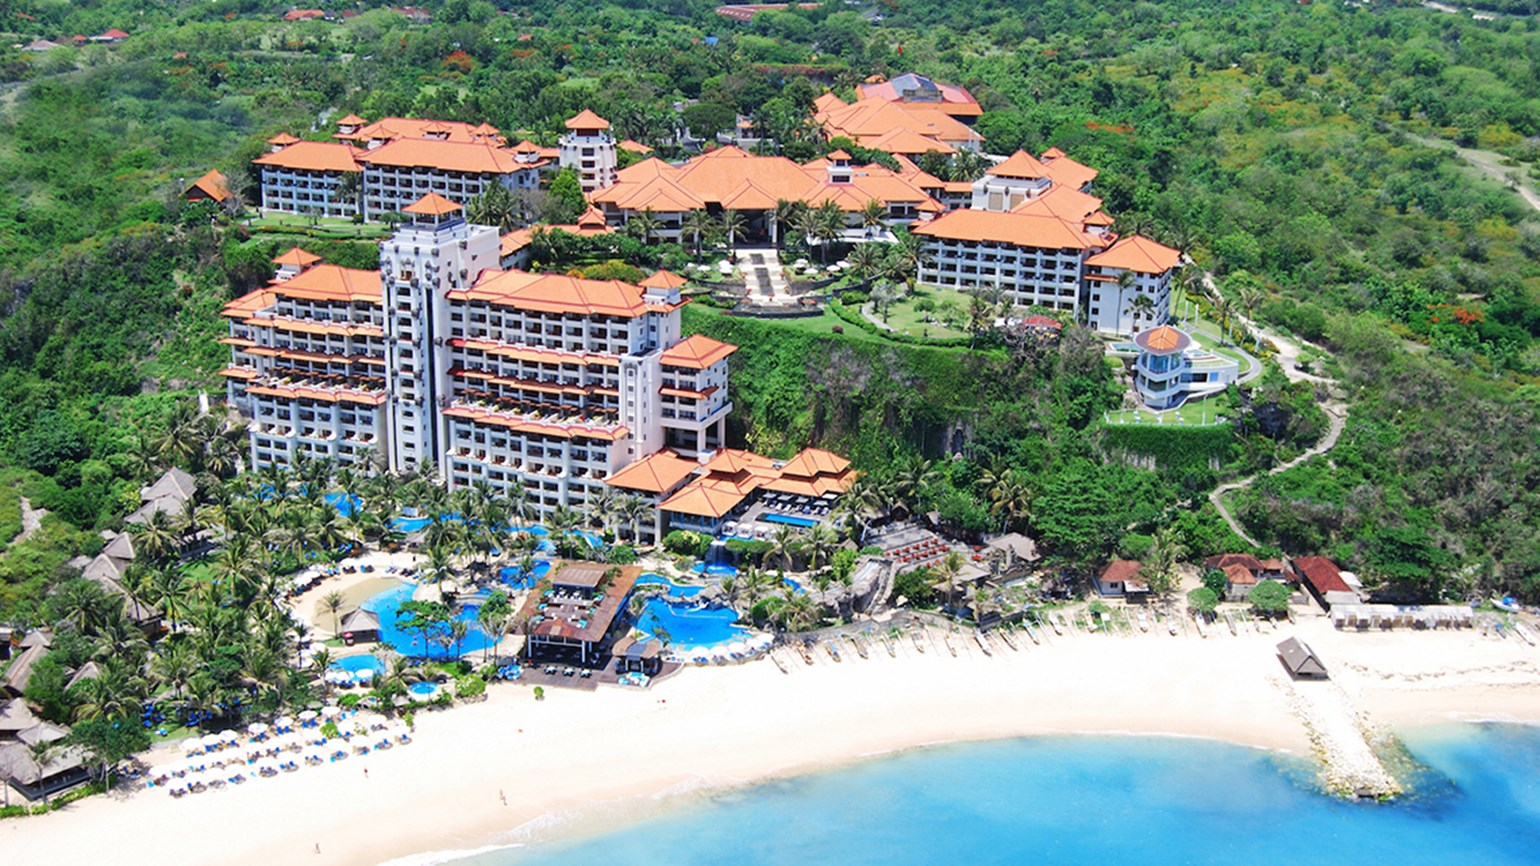 Hilton takes over Bali resort